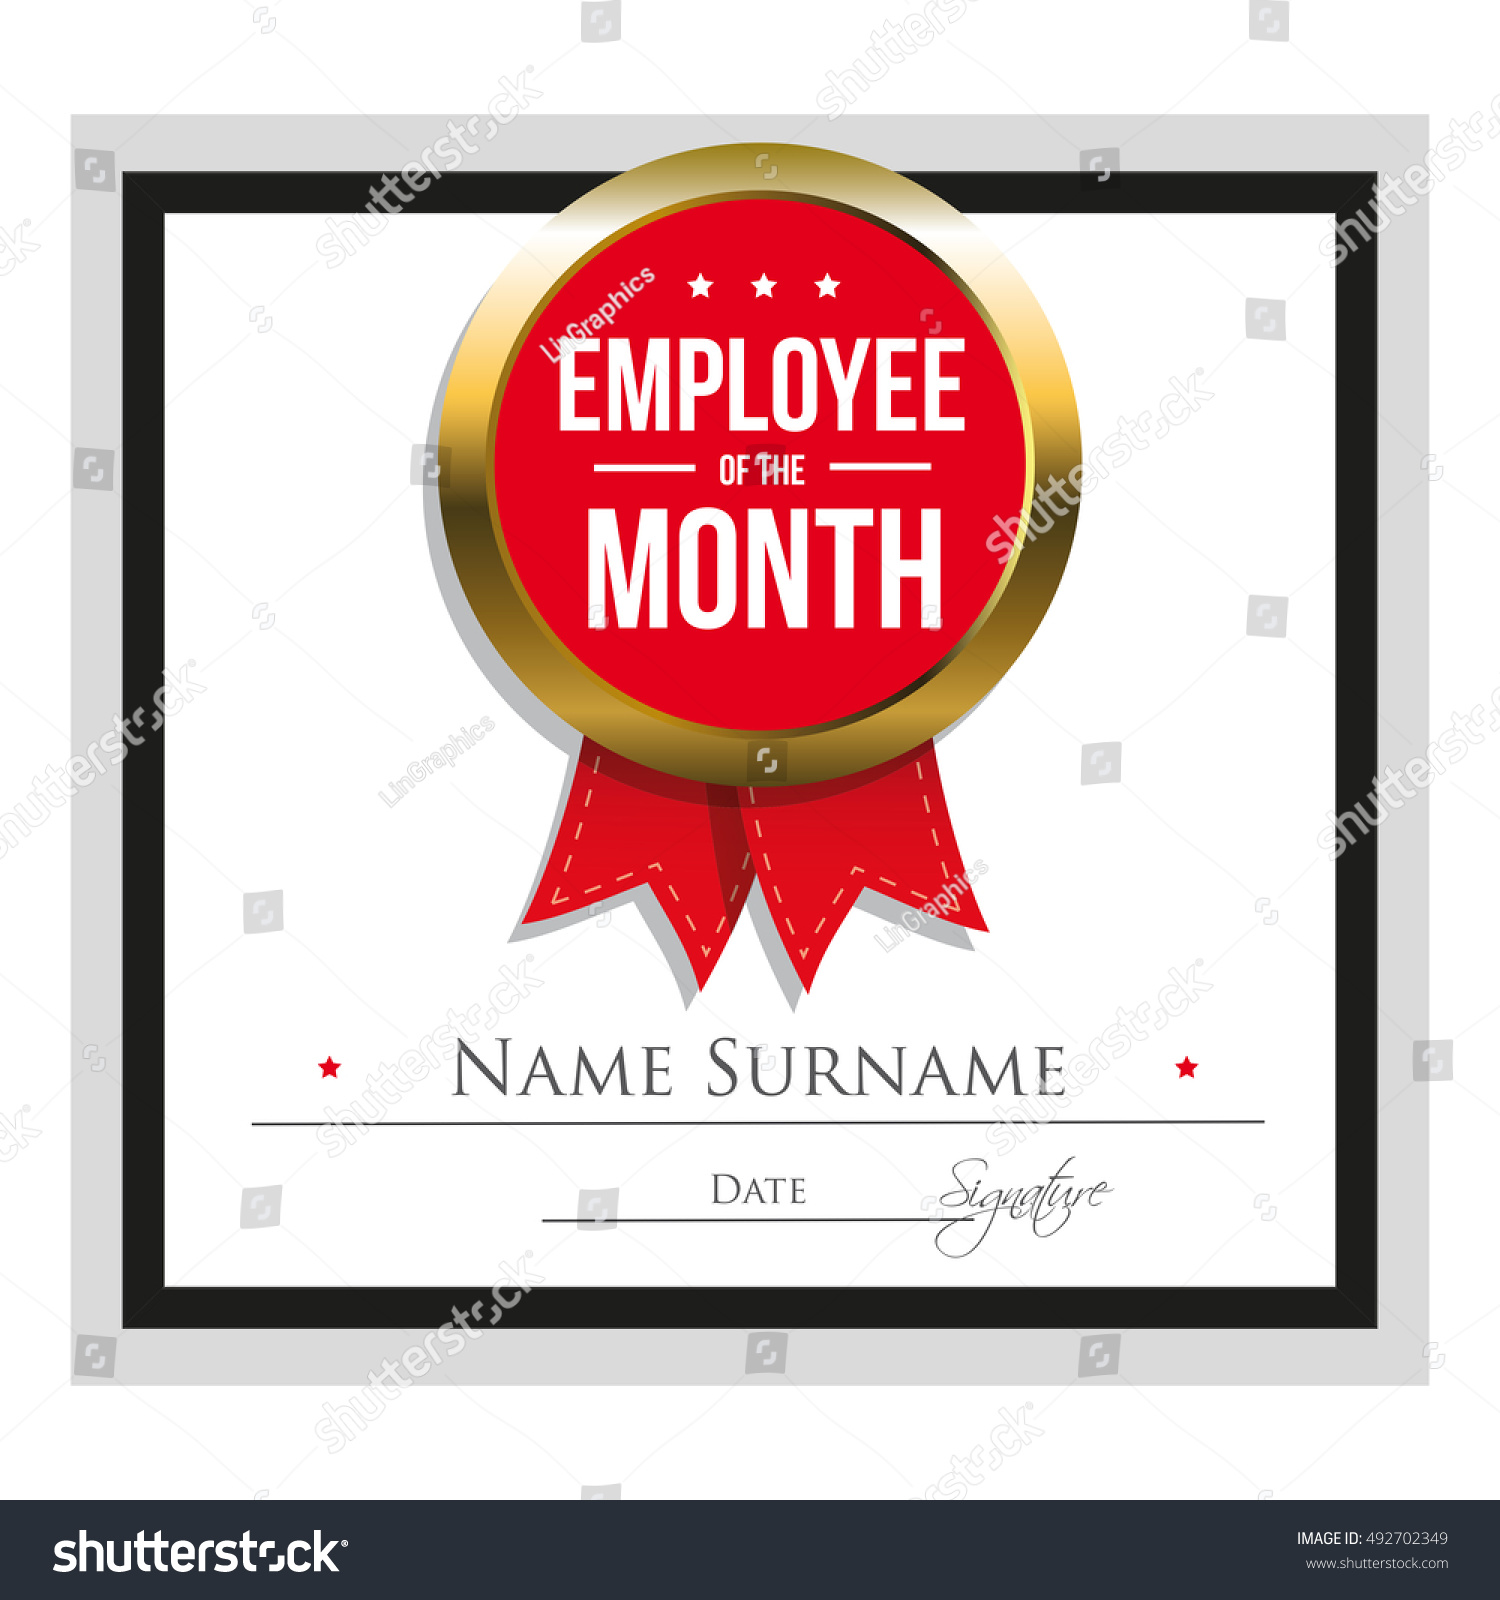 free employee month certificate template